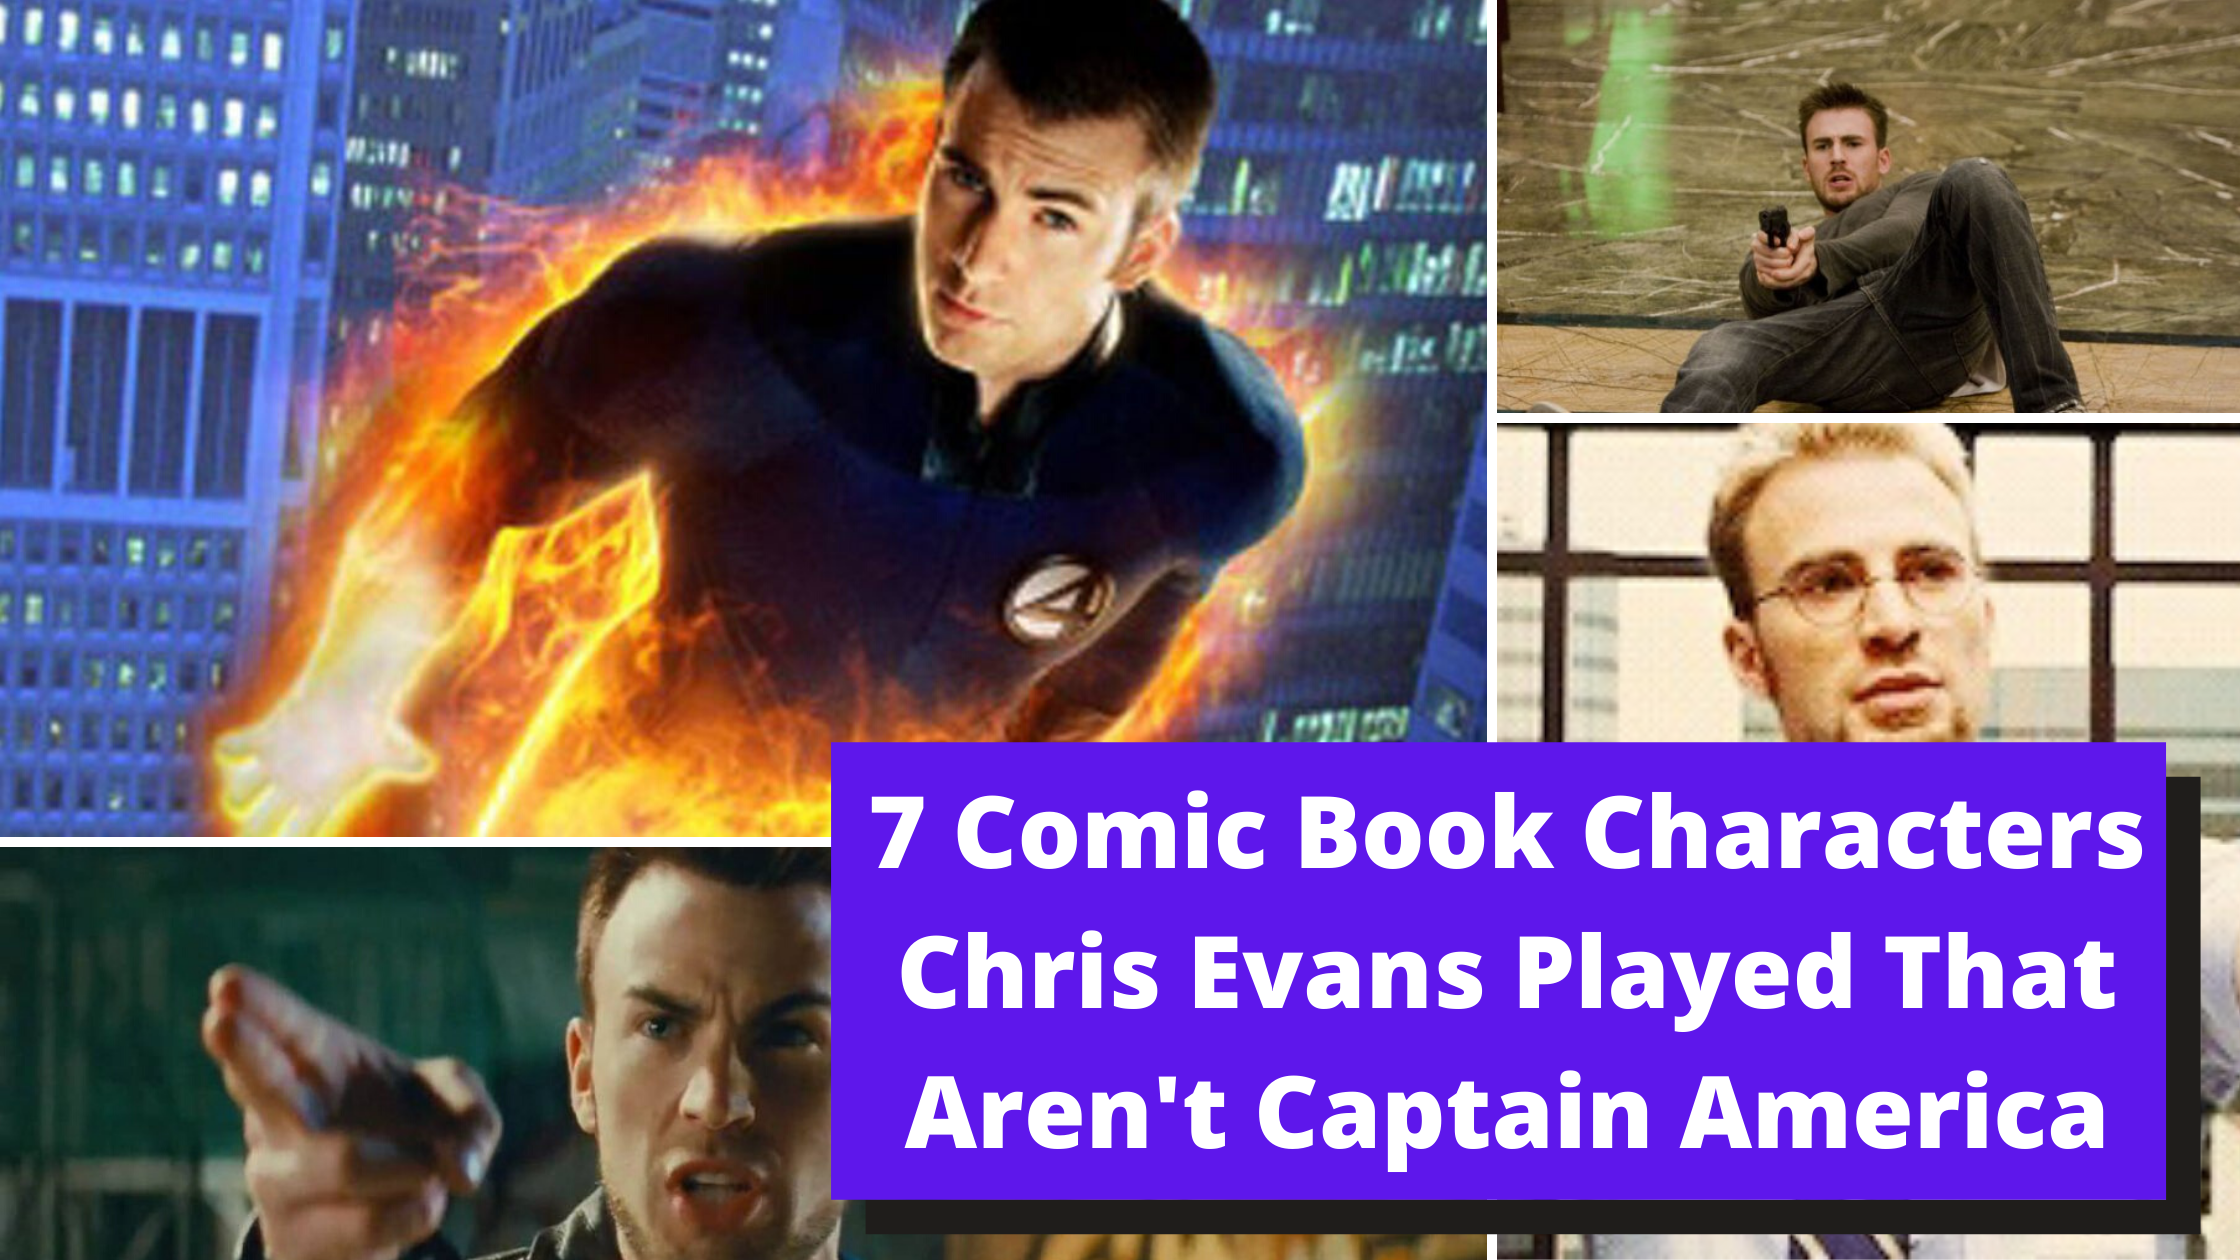 7 Comic Book Characters Chris Evans Played That Aren't Captain America